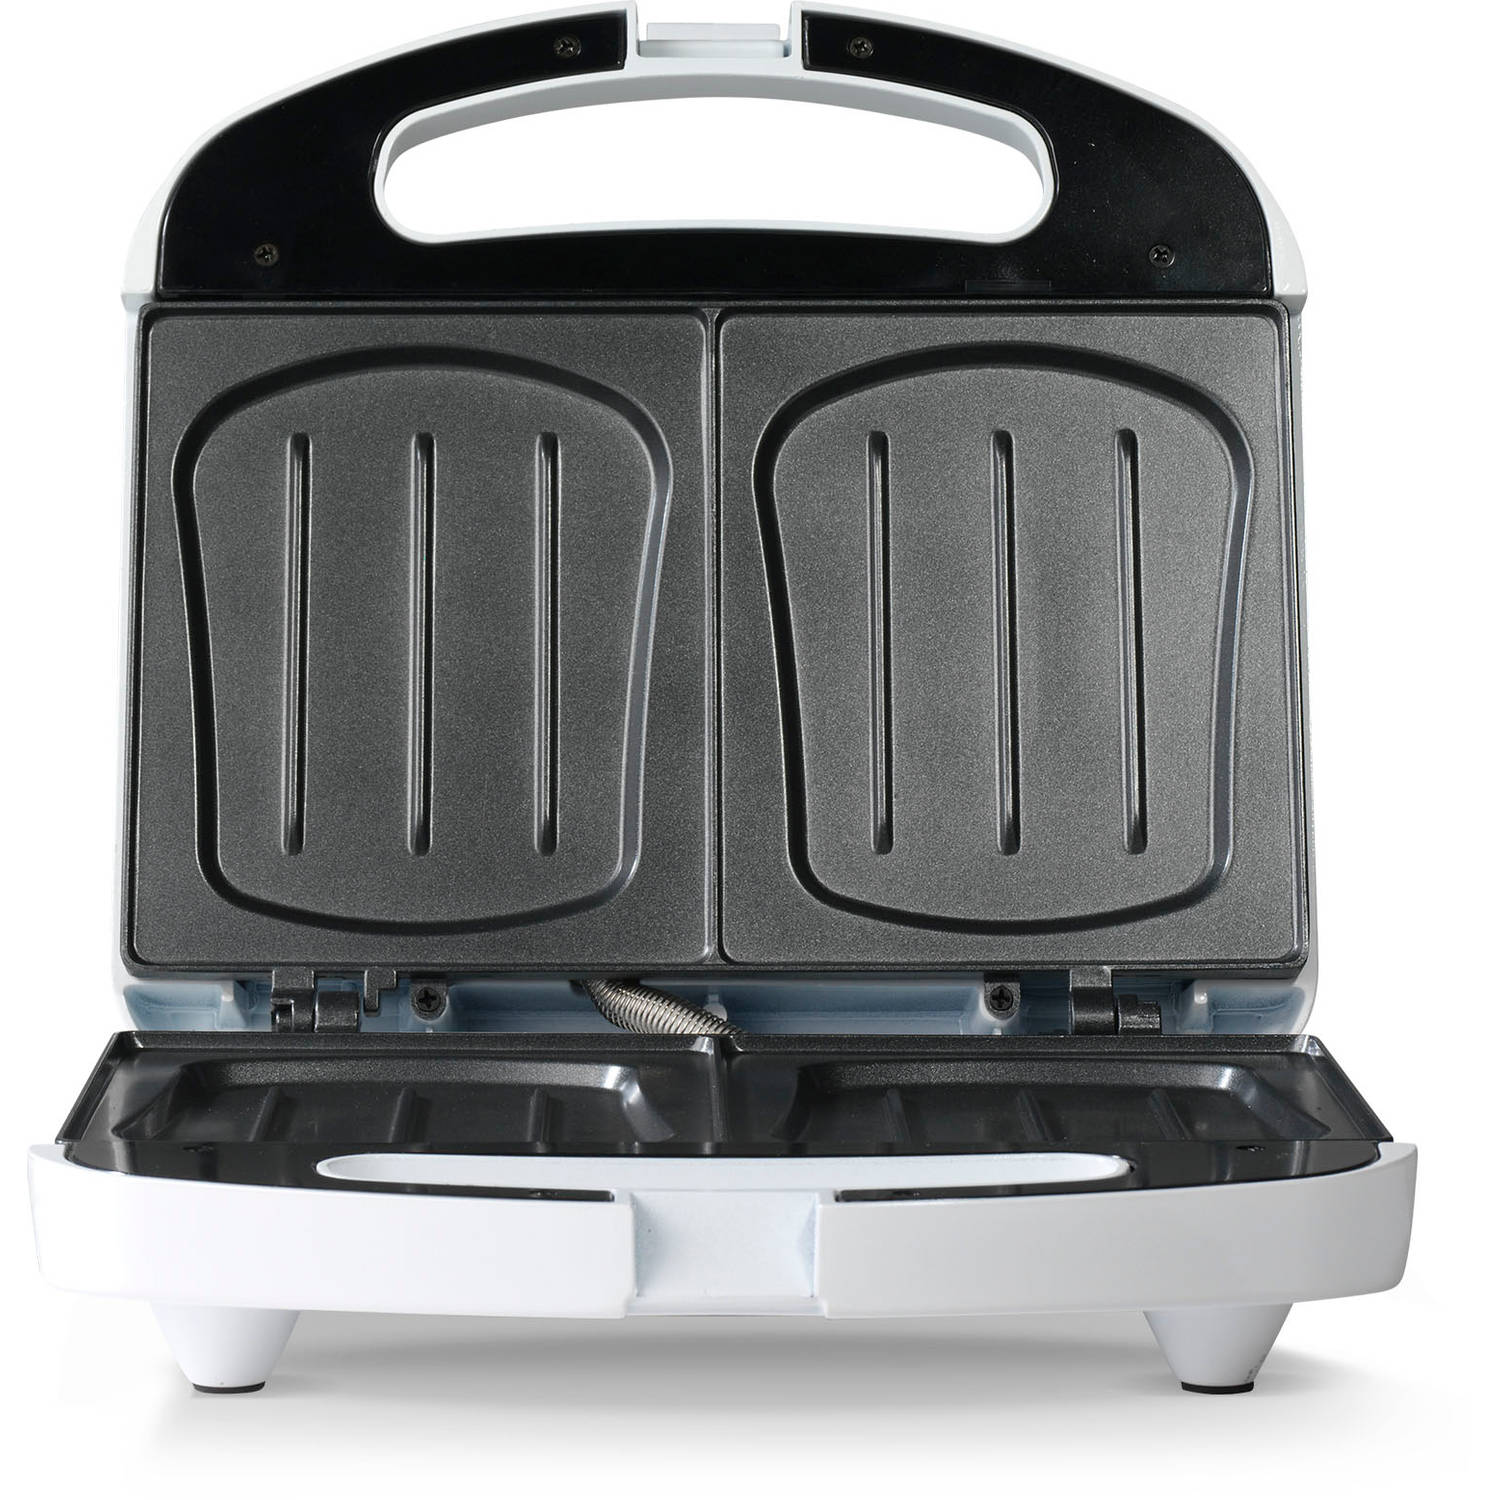 Korting Bourgini sandwich maker 12.5000.01 2 persoons